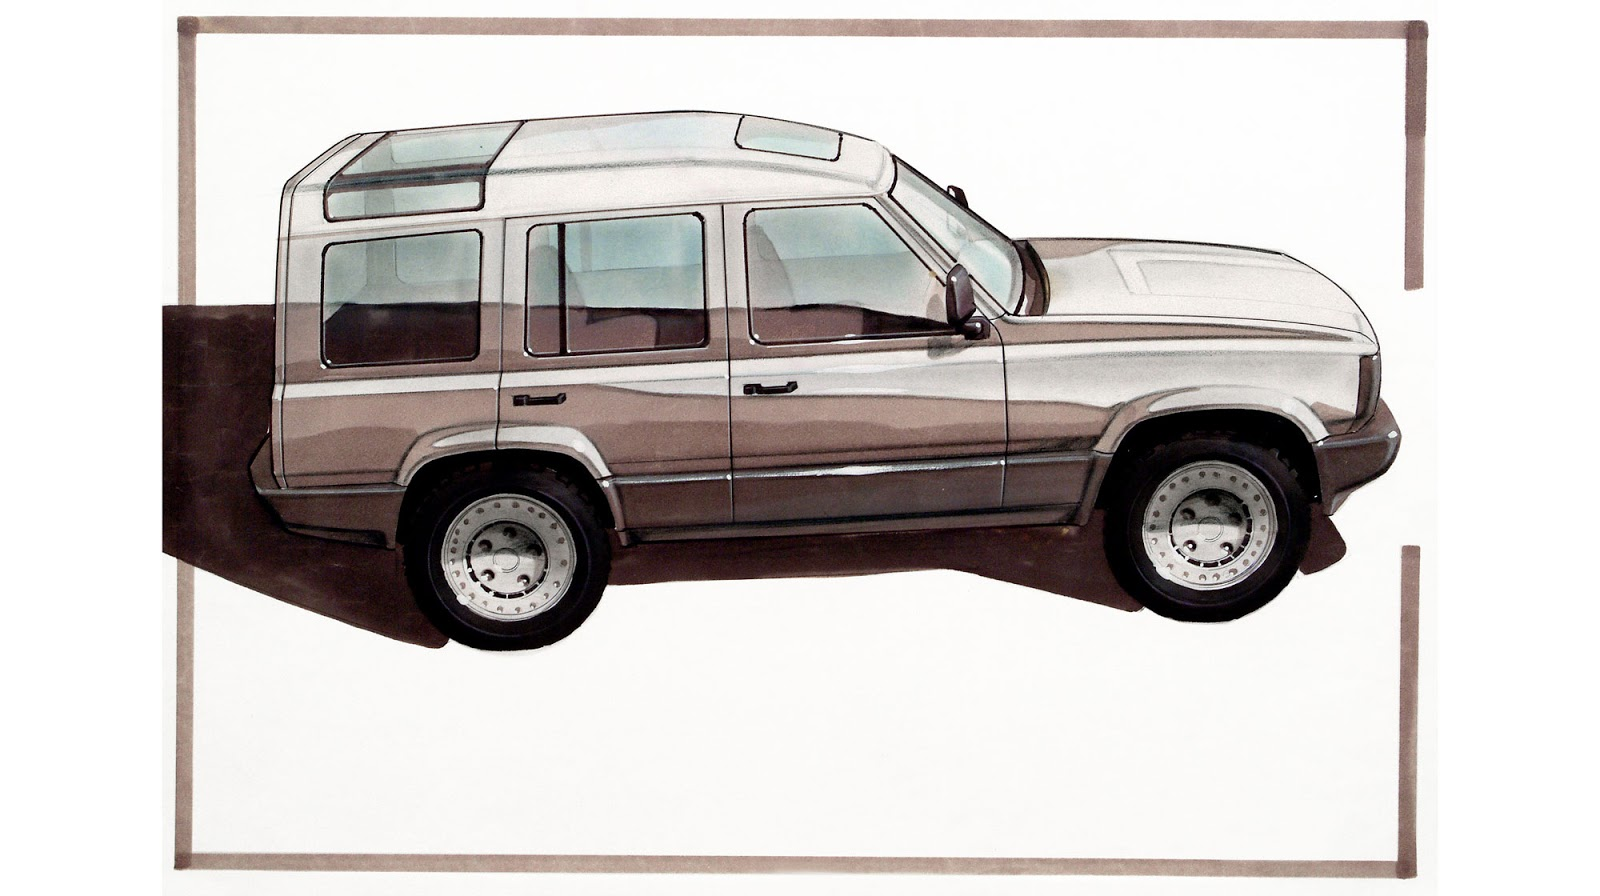 1986 sketch of the first Land Rover Discovery by Mike Sampson